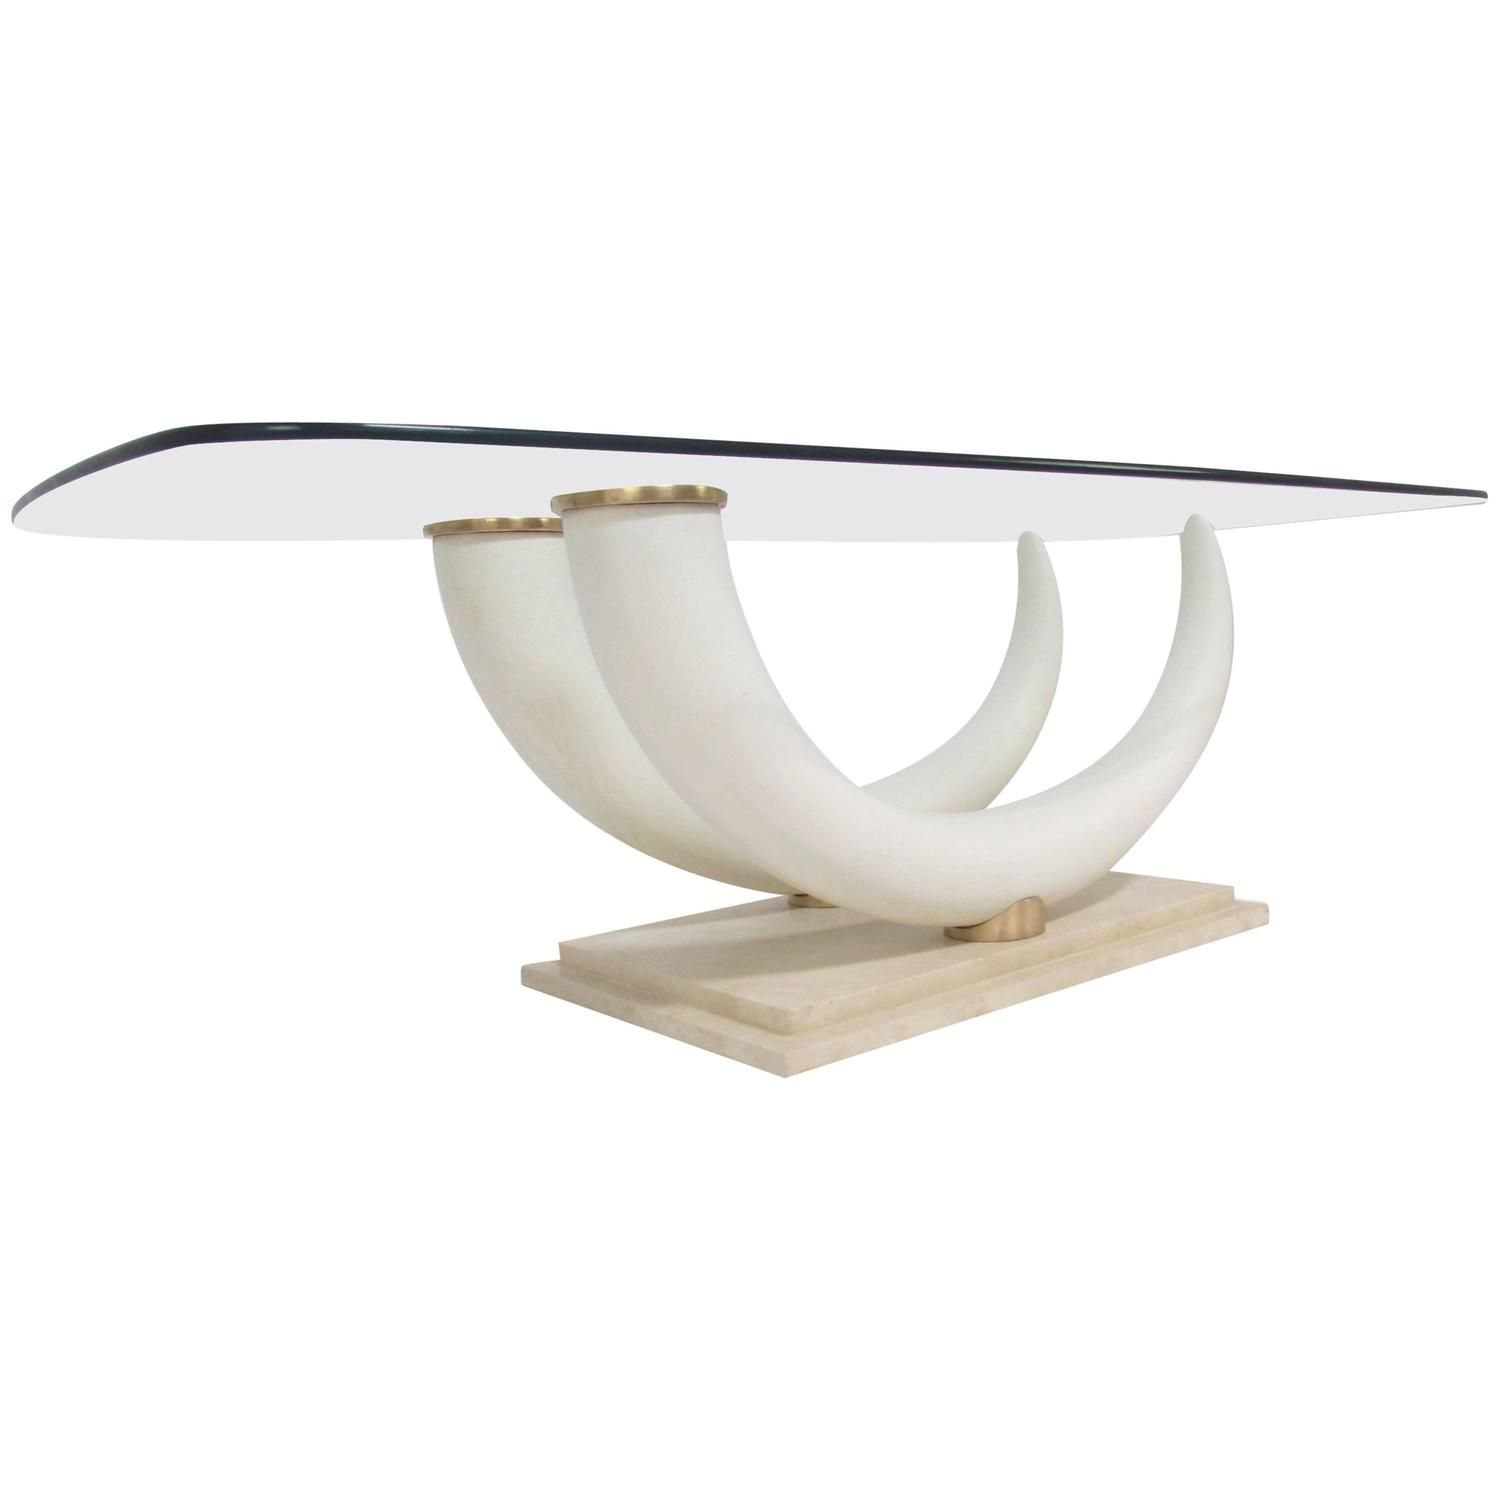 faux elephant tusk coffee tablemaison jansen | tables and modern